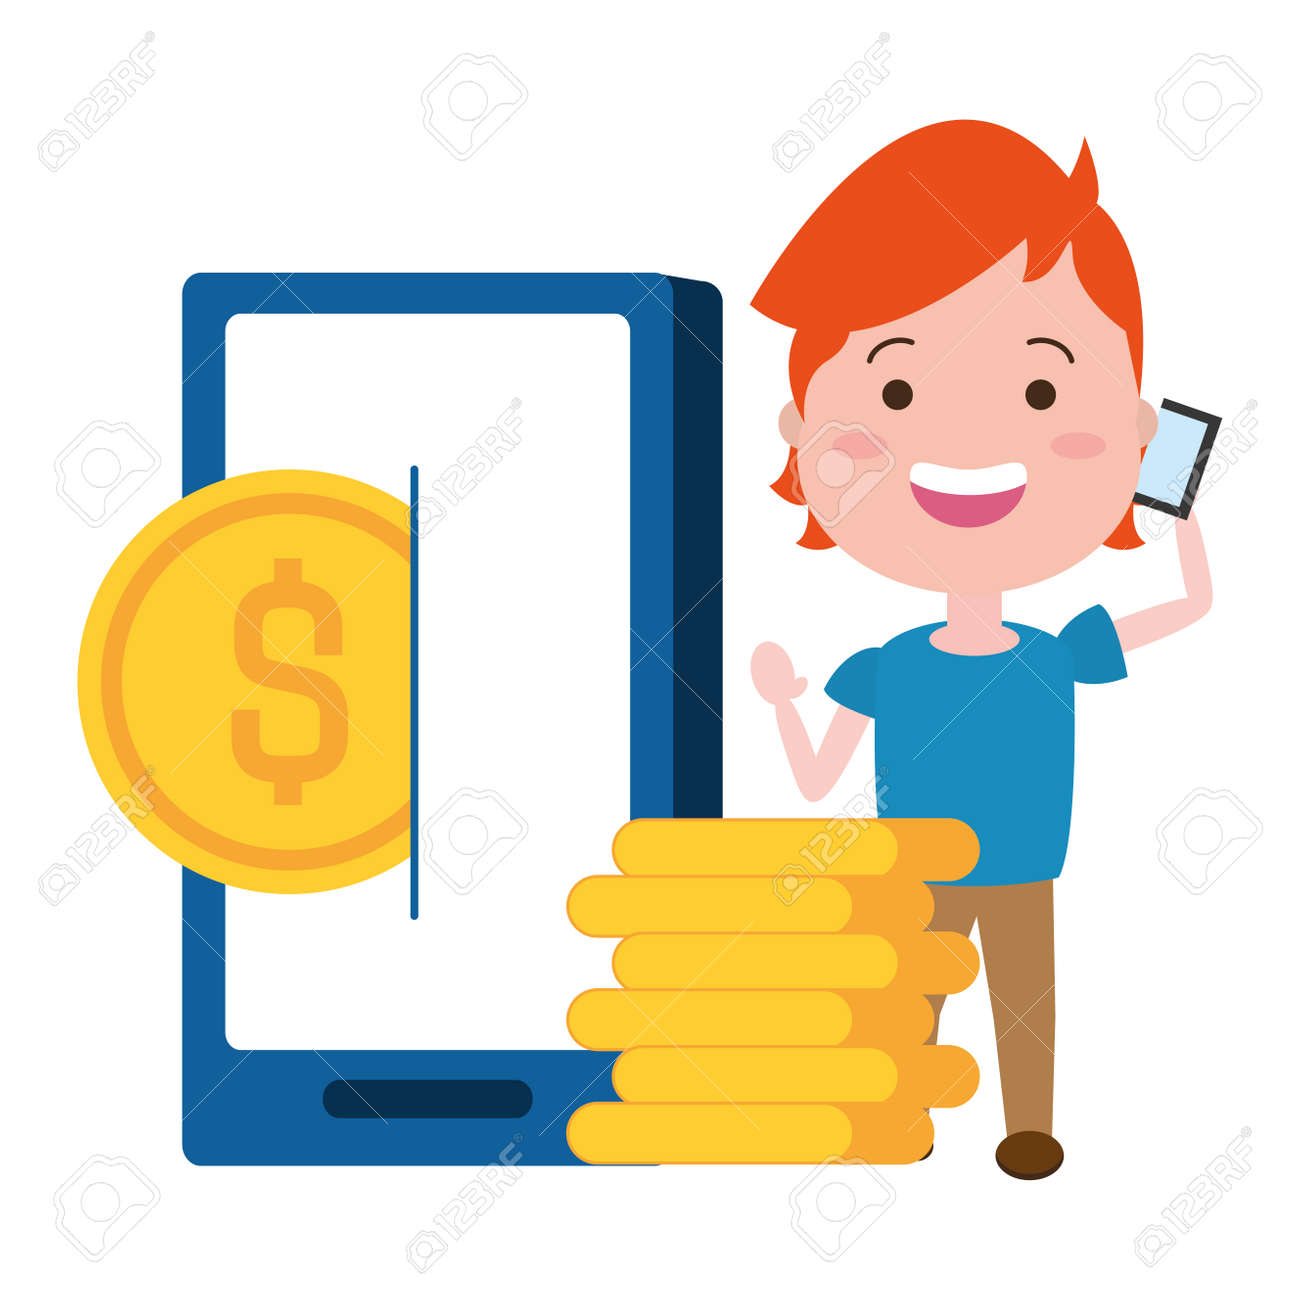 woman using smarphone with coins dollars vector illustration design - 152287491